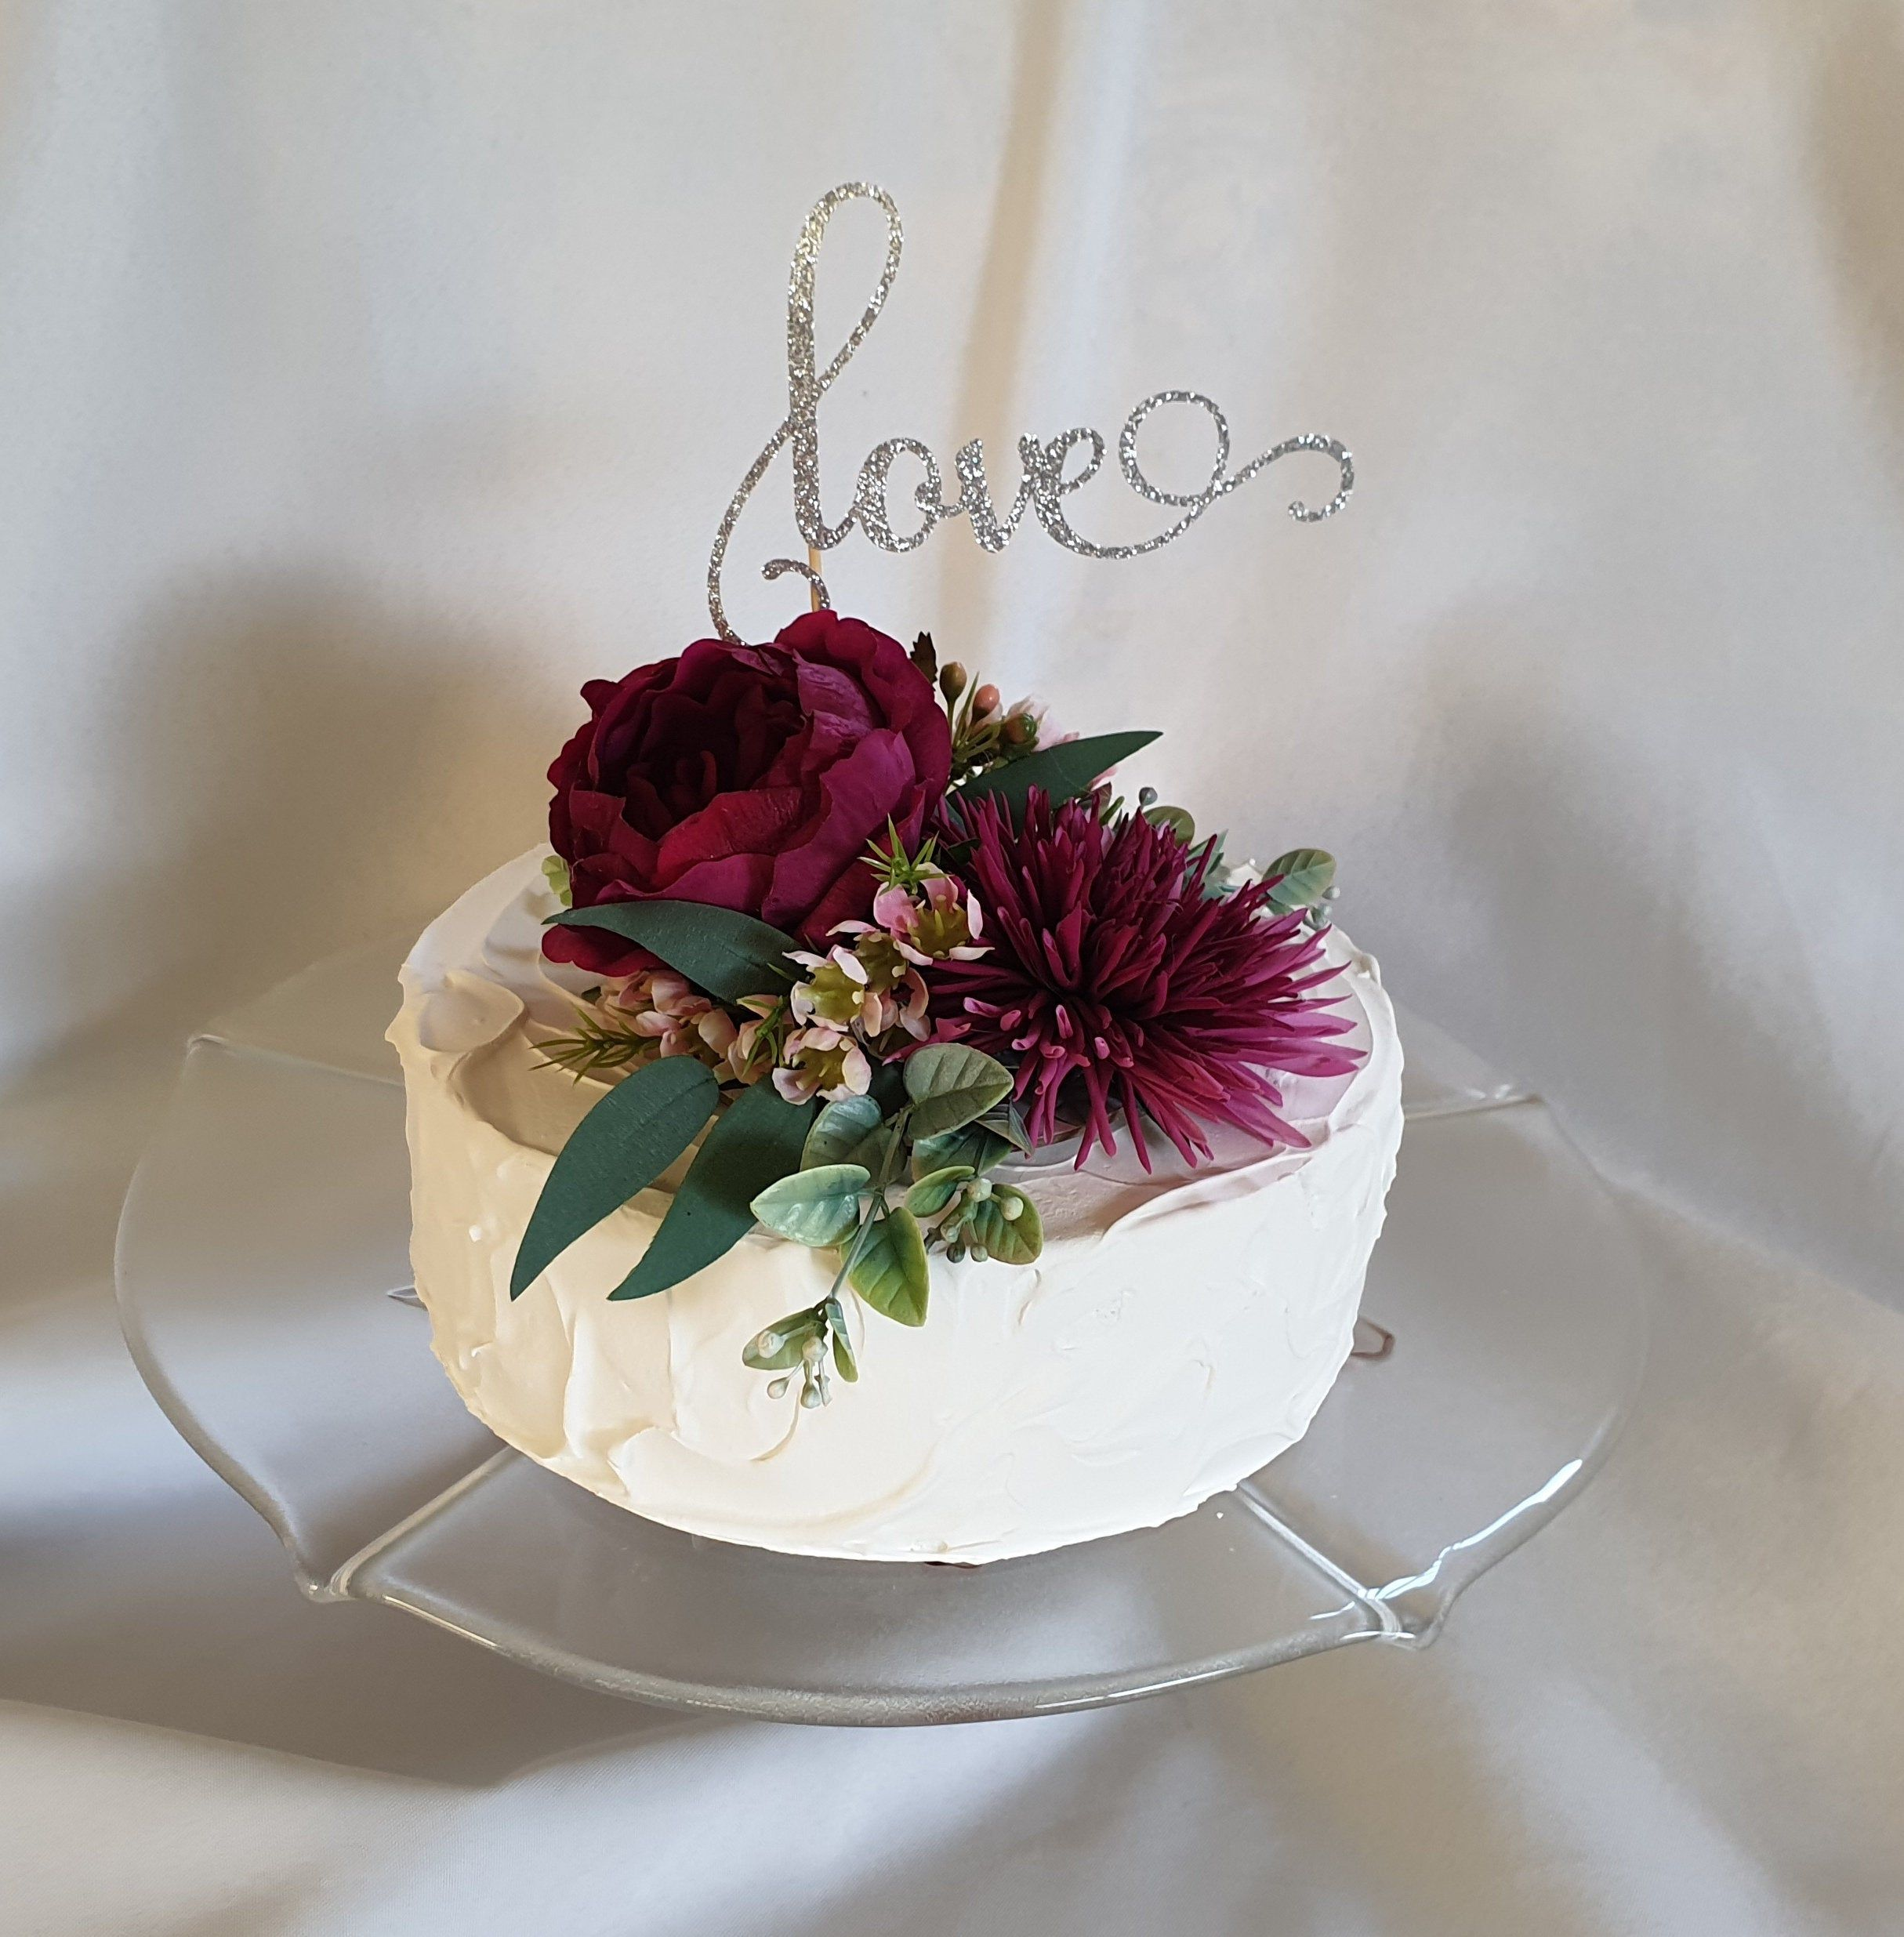 Cake Topper Real Touch Artificial Fake Flower David Austin Rose Cake Toppers Flower Cake Toppers Tropical Cake Topper